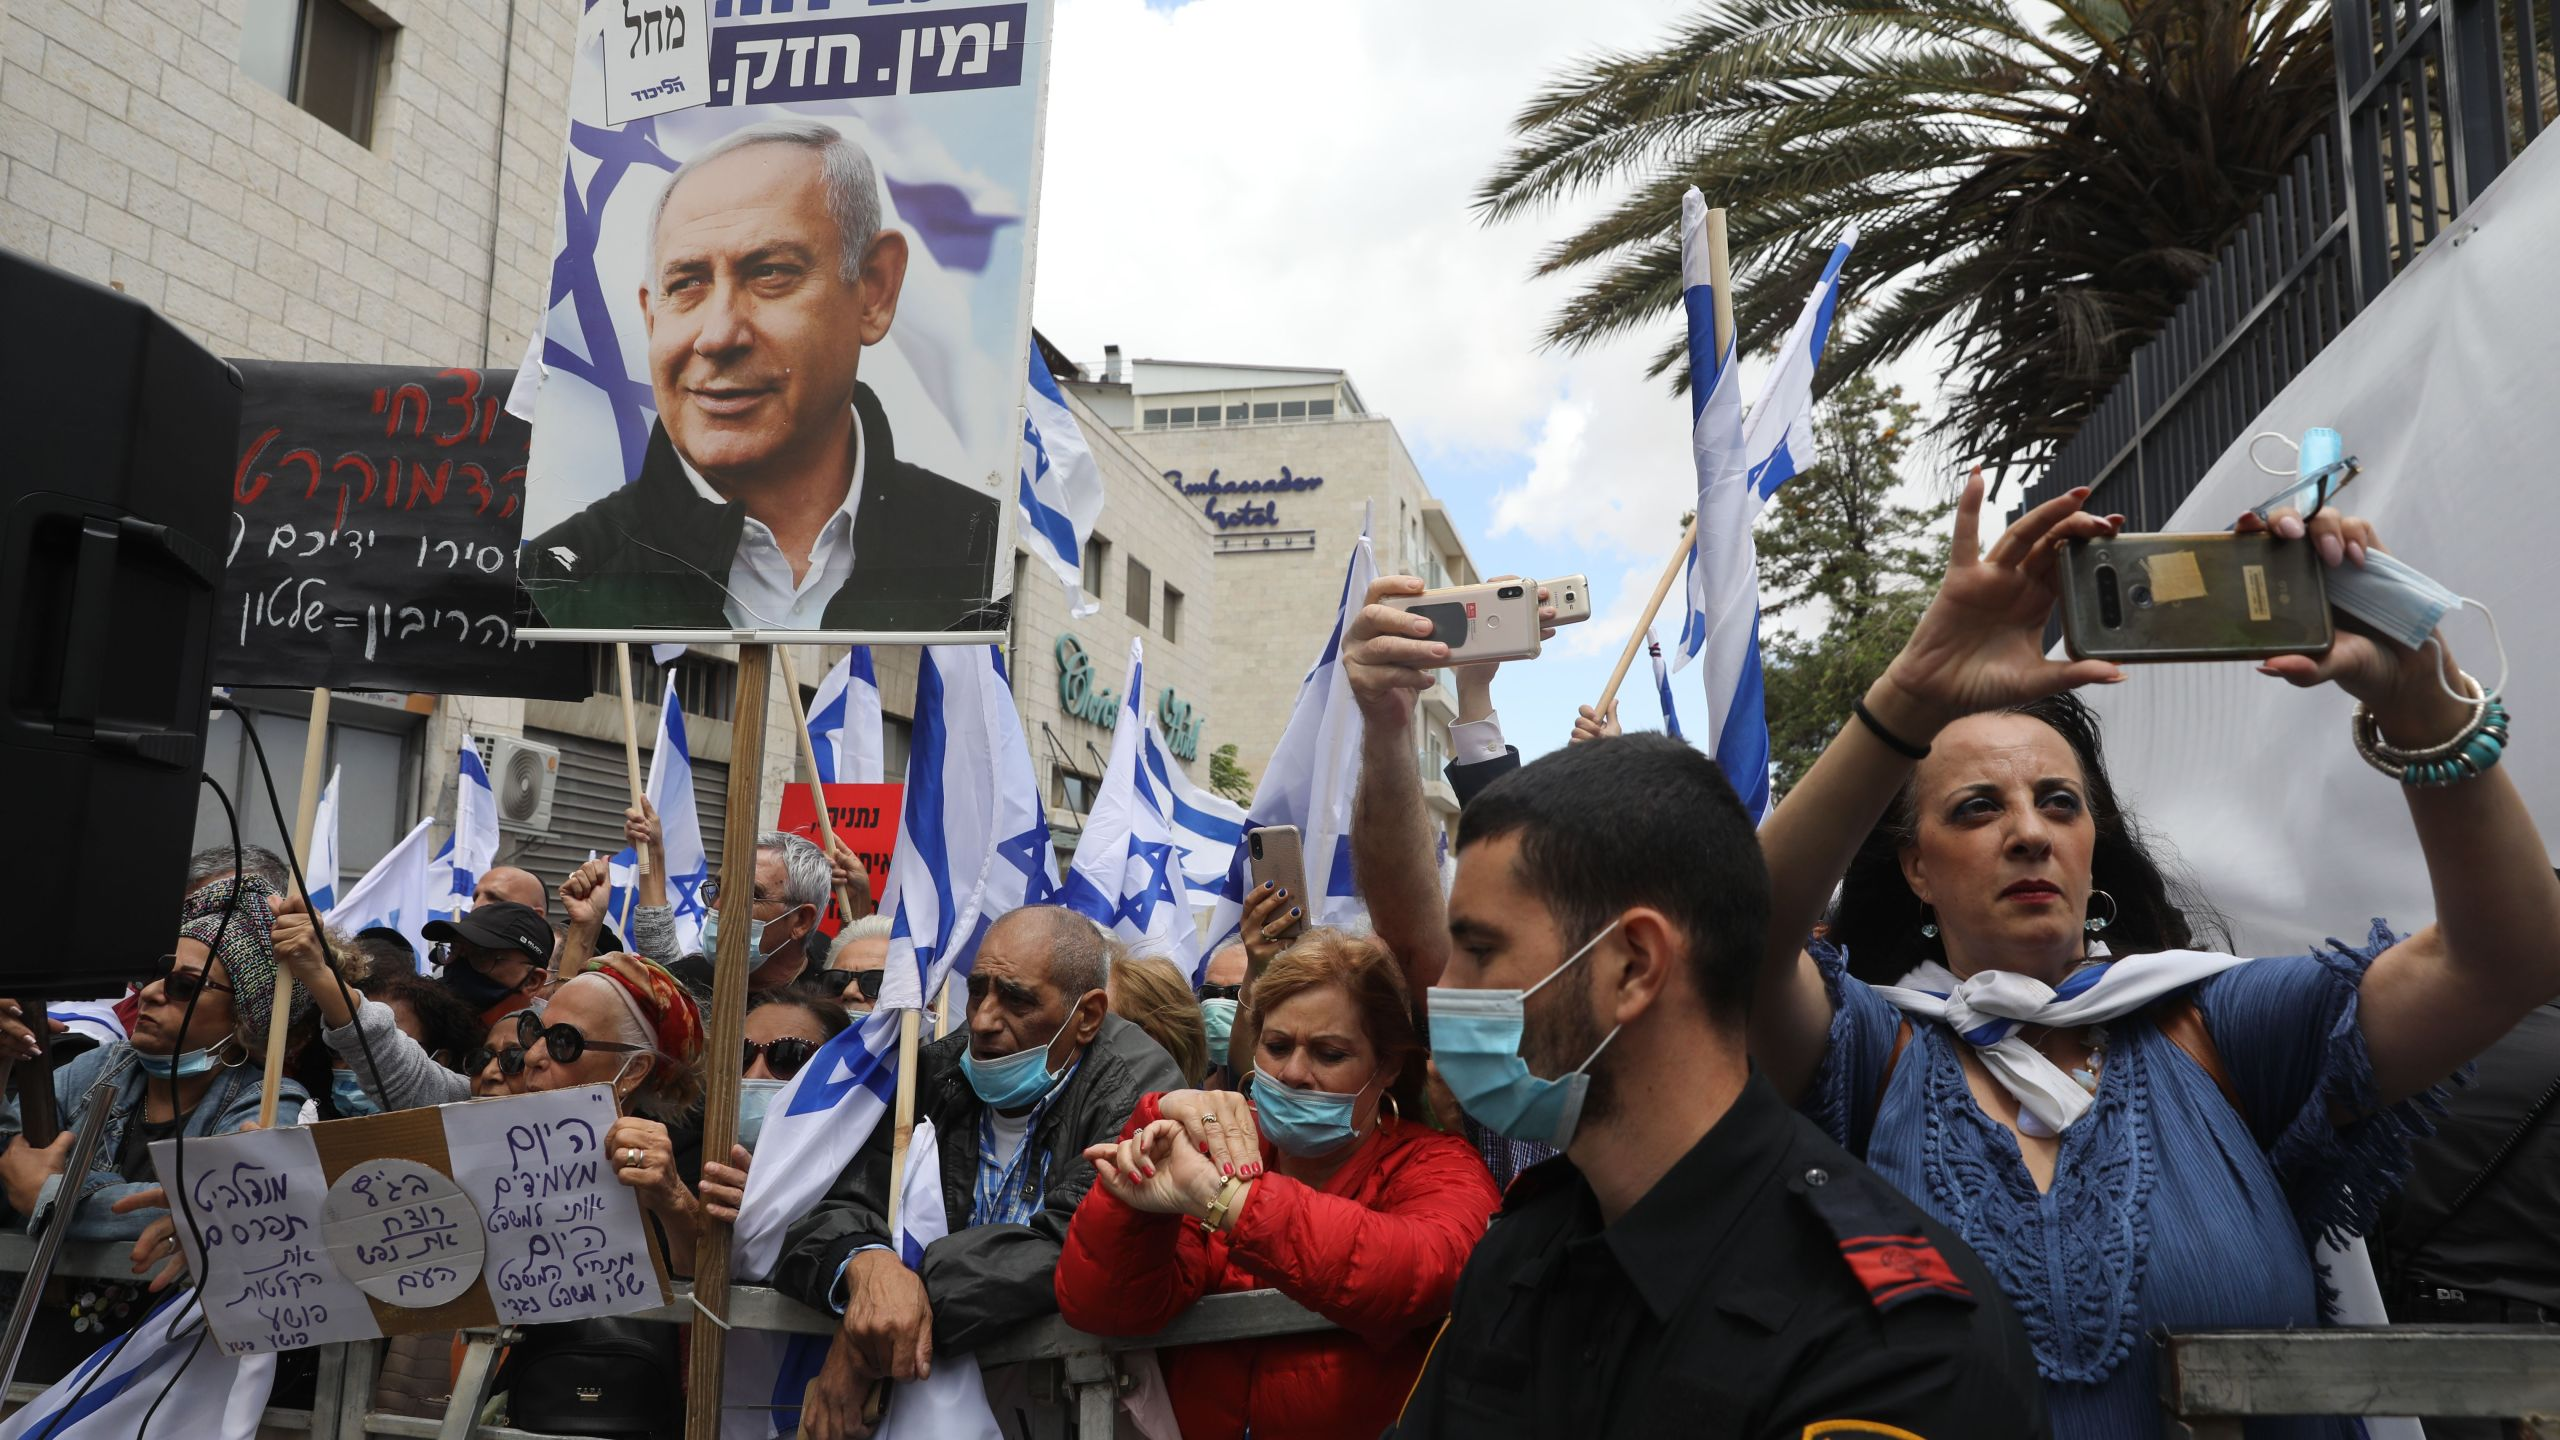 Israeli supporters hold flags and placards during a rally in support of Prime Minister Benjamin Netanyahu outside the district court of Jerusalem on May 24, 2020. (MENAHEM KAHANA/AFP via Getty Images)